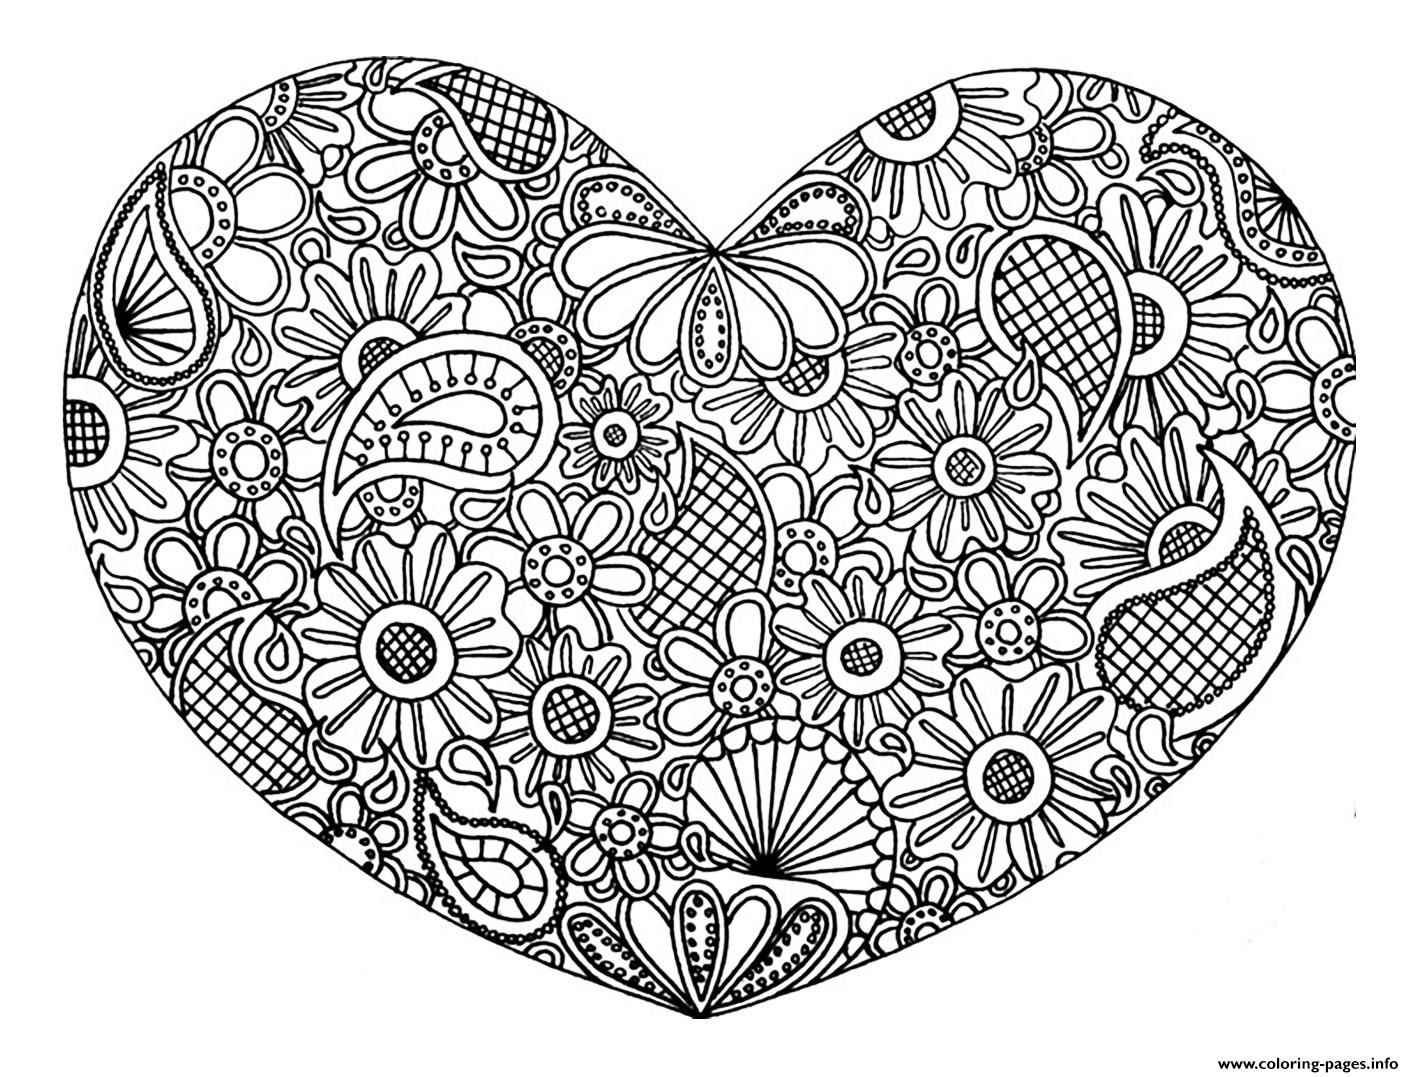 Colouring pages for adults printable free - Adult Heart Mandala Fleurs Zen 2017 Coloring Pages